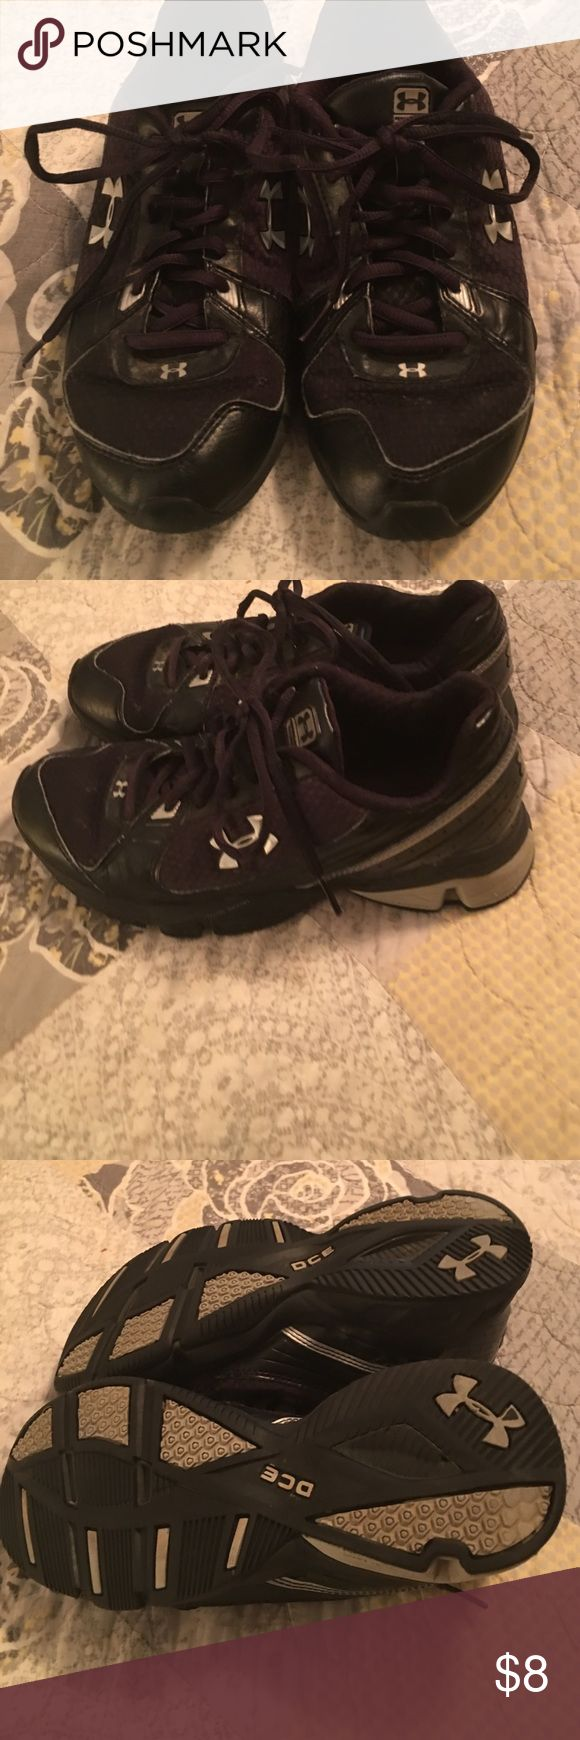 Under armor shoes Under armor shoes in good condition super comfy Under Armour Shoes Athletic Shoes